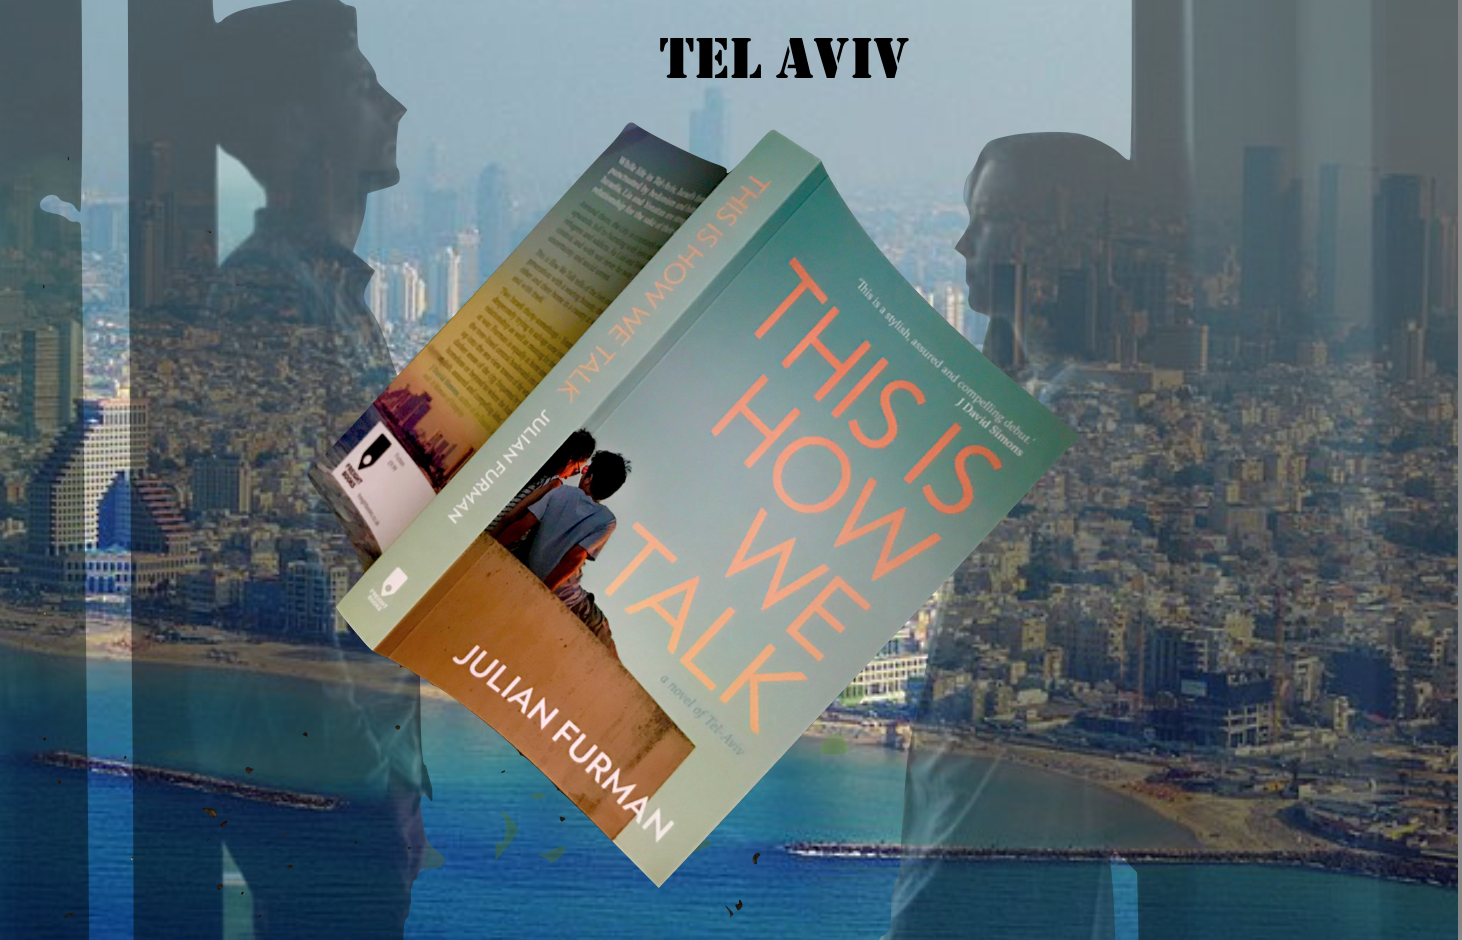 This Is How We Talk By Julian Furman A Novel Of Tel Aviv With